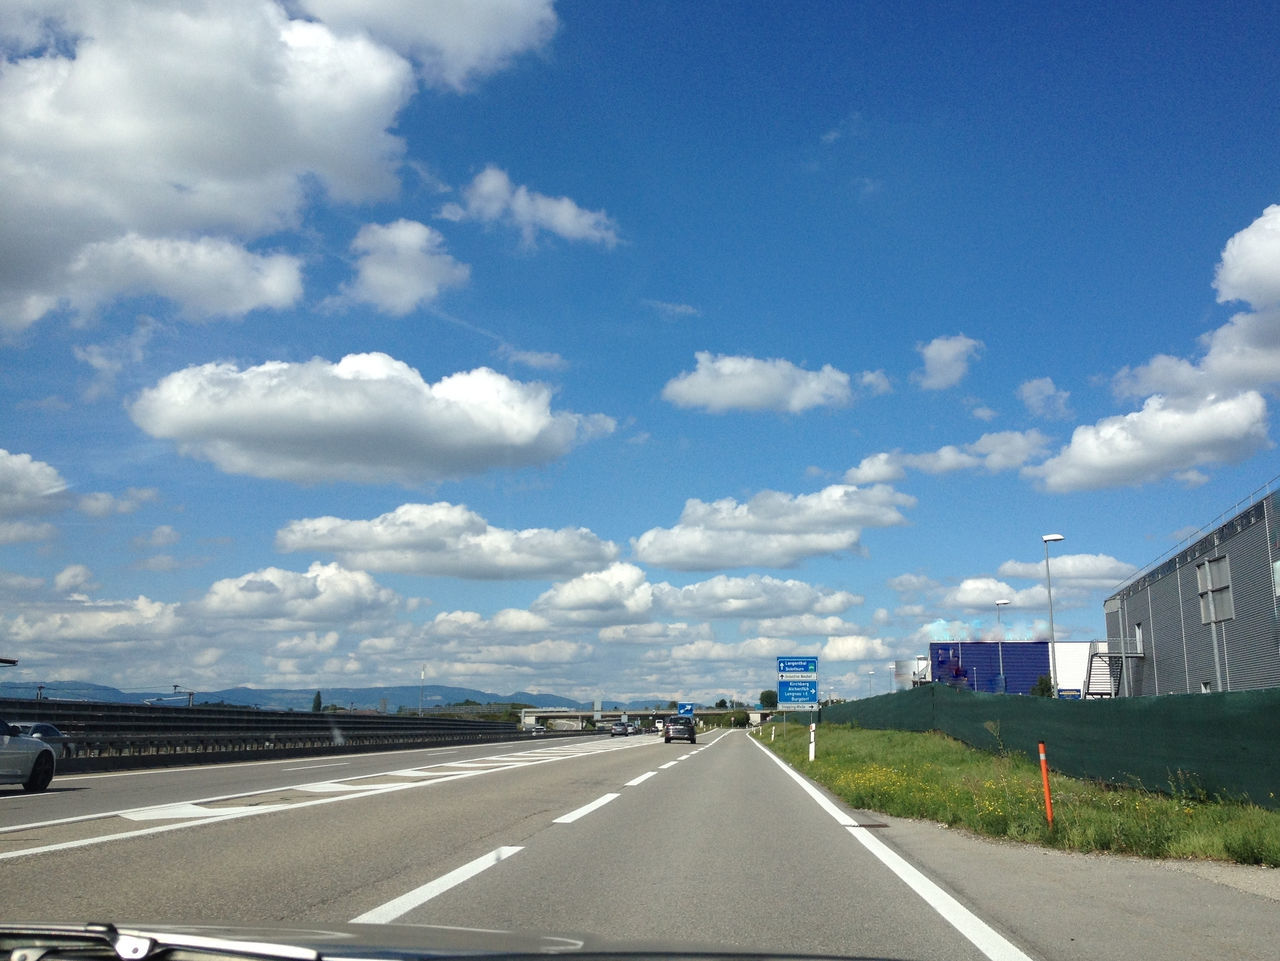 road, cloud - sky, road marking, sky, transportation, the way forward, day, dividing line, outdoors, no people, architecture, built structure, nature